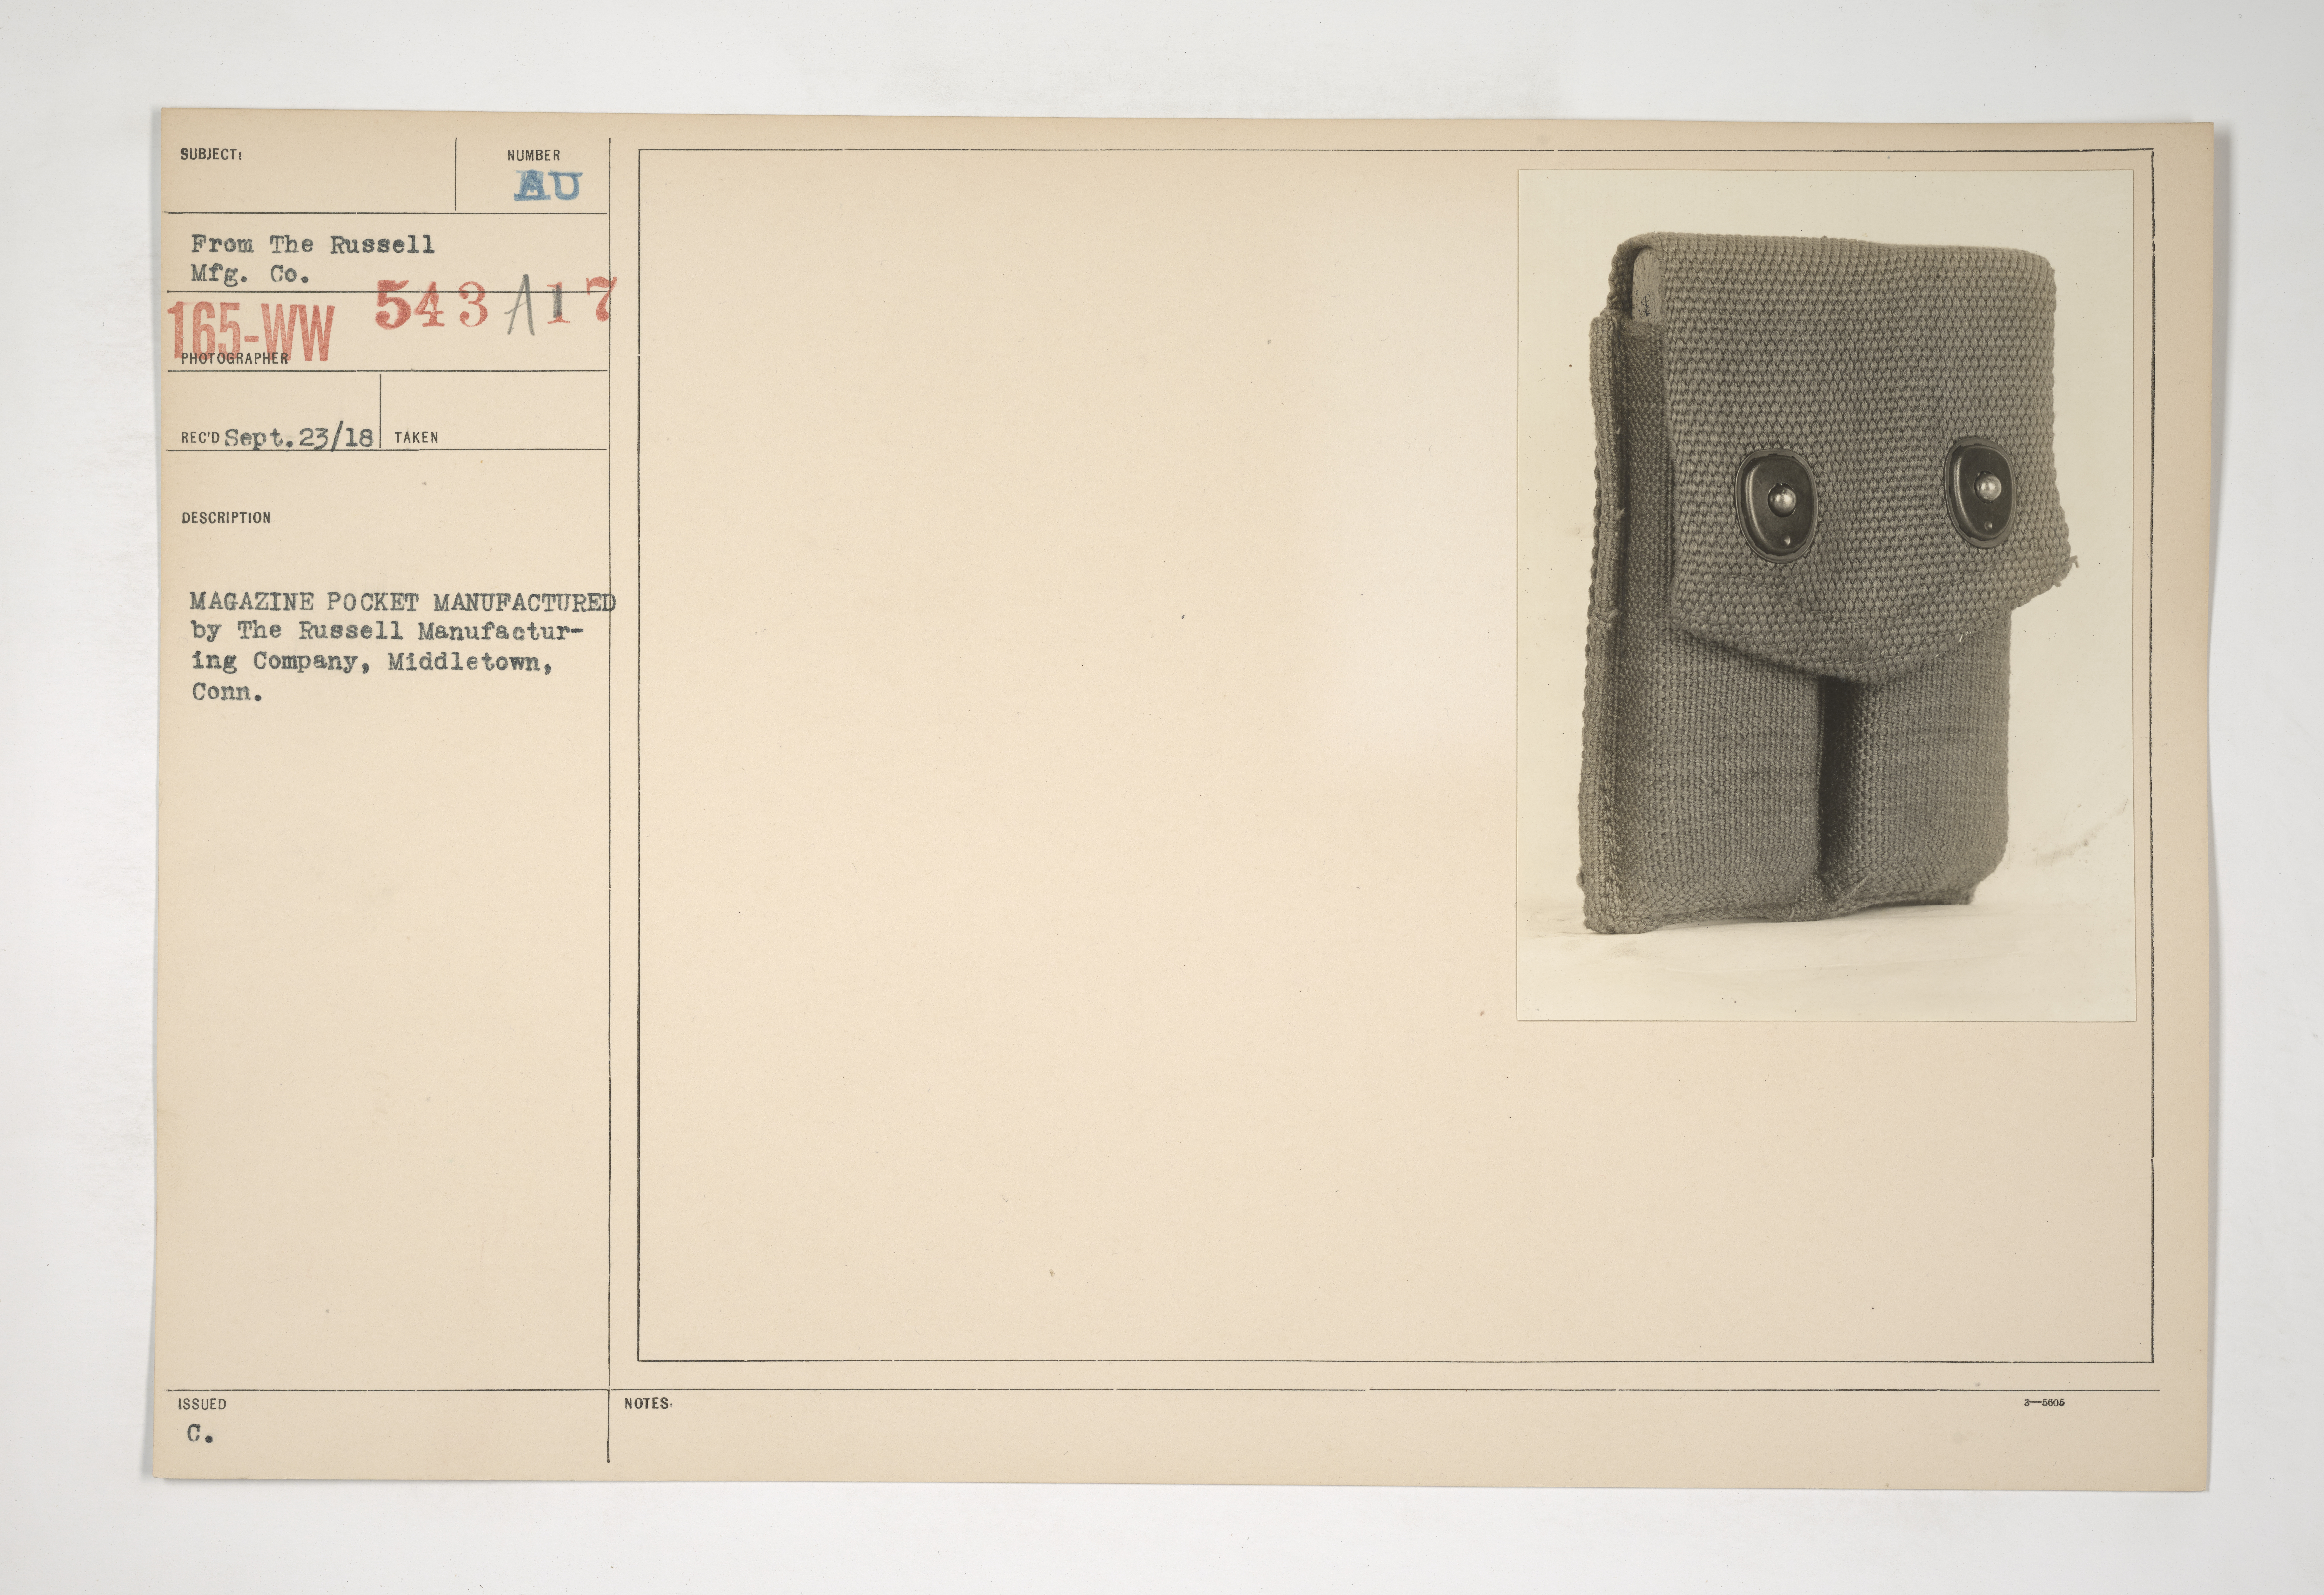 Uniforms and Equipment - Pouches and Scabbards [165-WW-543A-17]